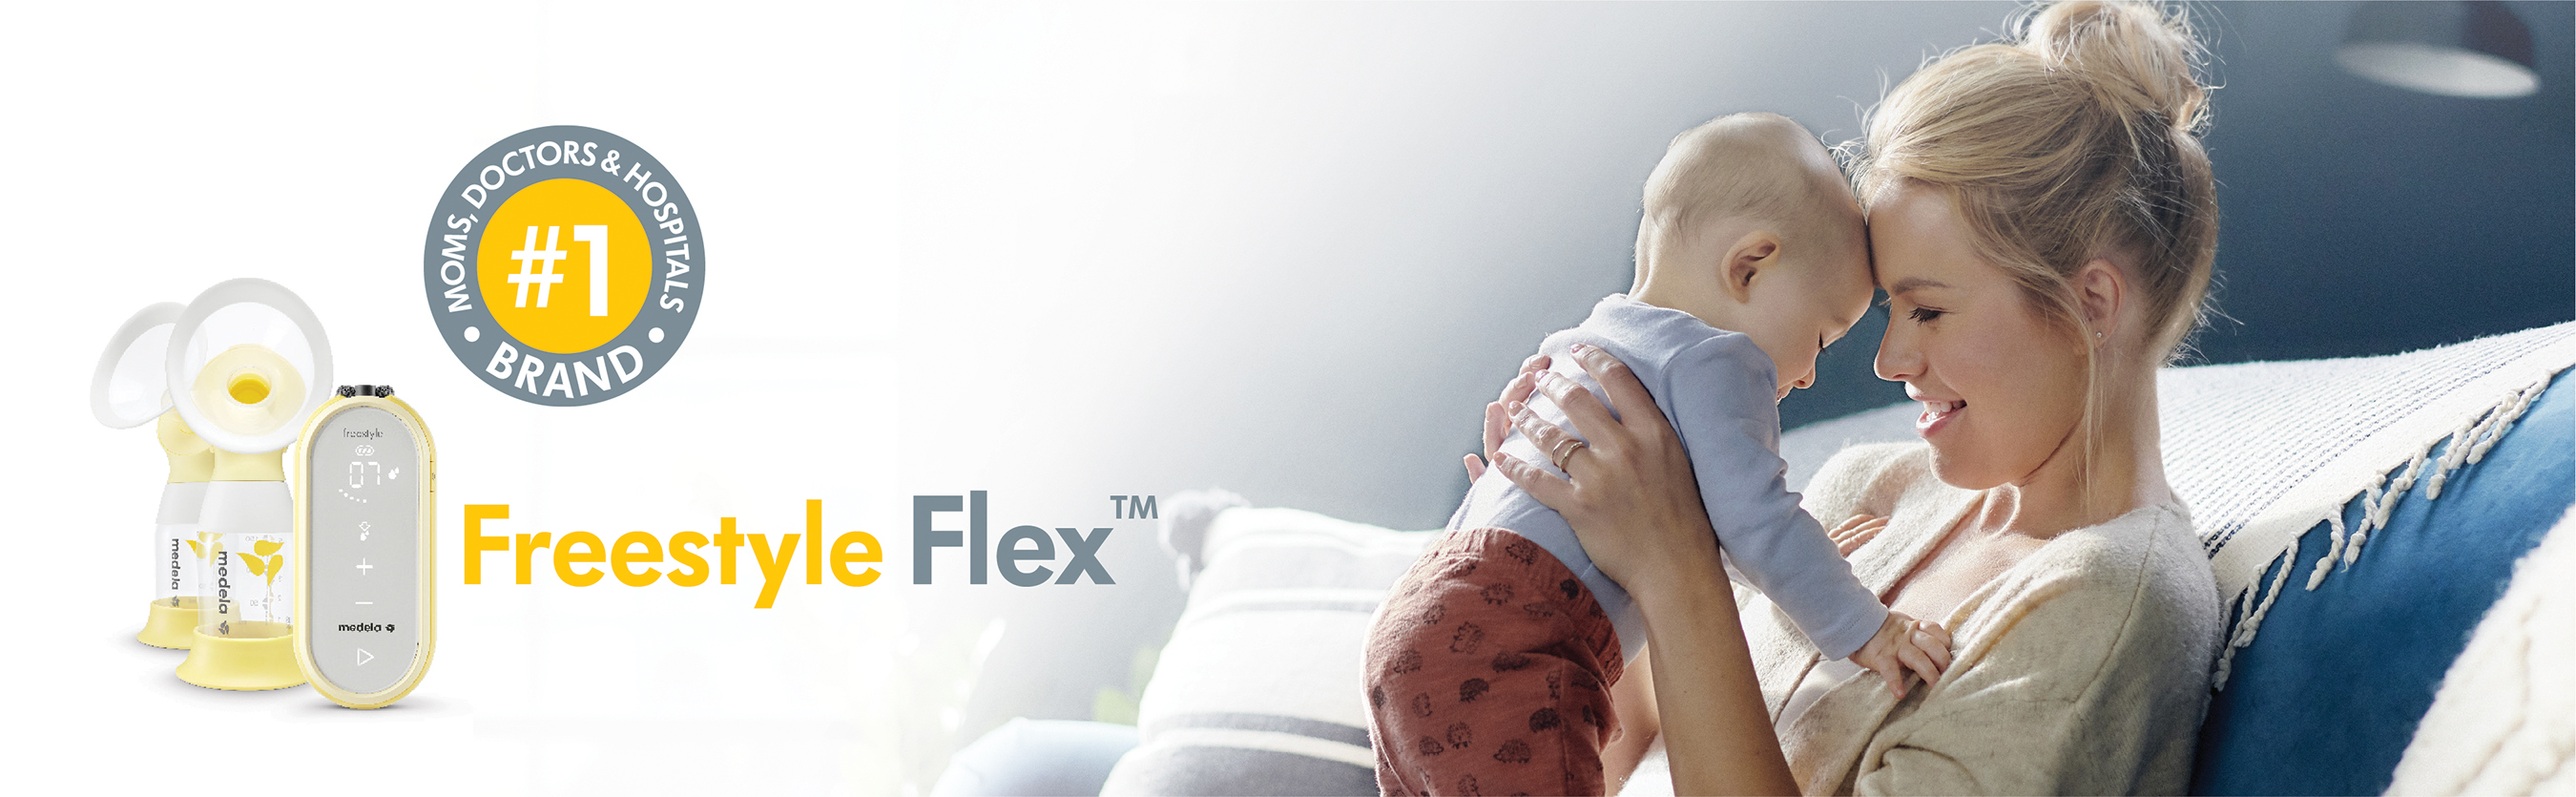 Freestyle Flex Launches From Medela Giving Moms More Mobility